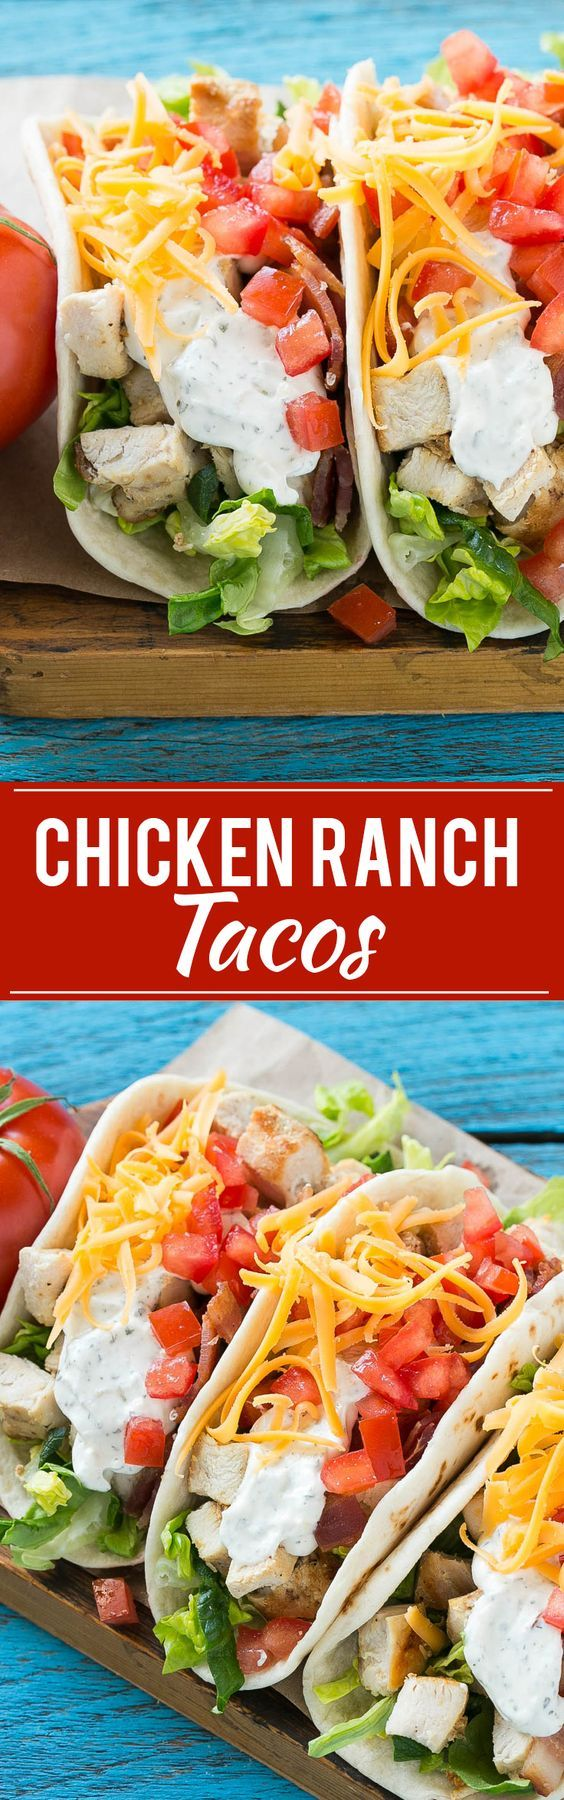 This recipe for chicken ranch tacos is grilled chicken with bacon homemade ranch sauce cheese and fresh vegetables all stuffed inside warm flour tortillas. A family friendly meal that's simple to make and fun to eat!